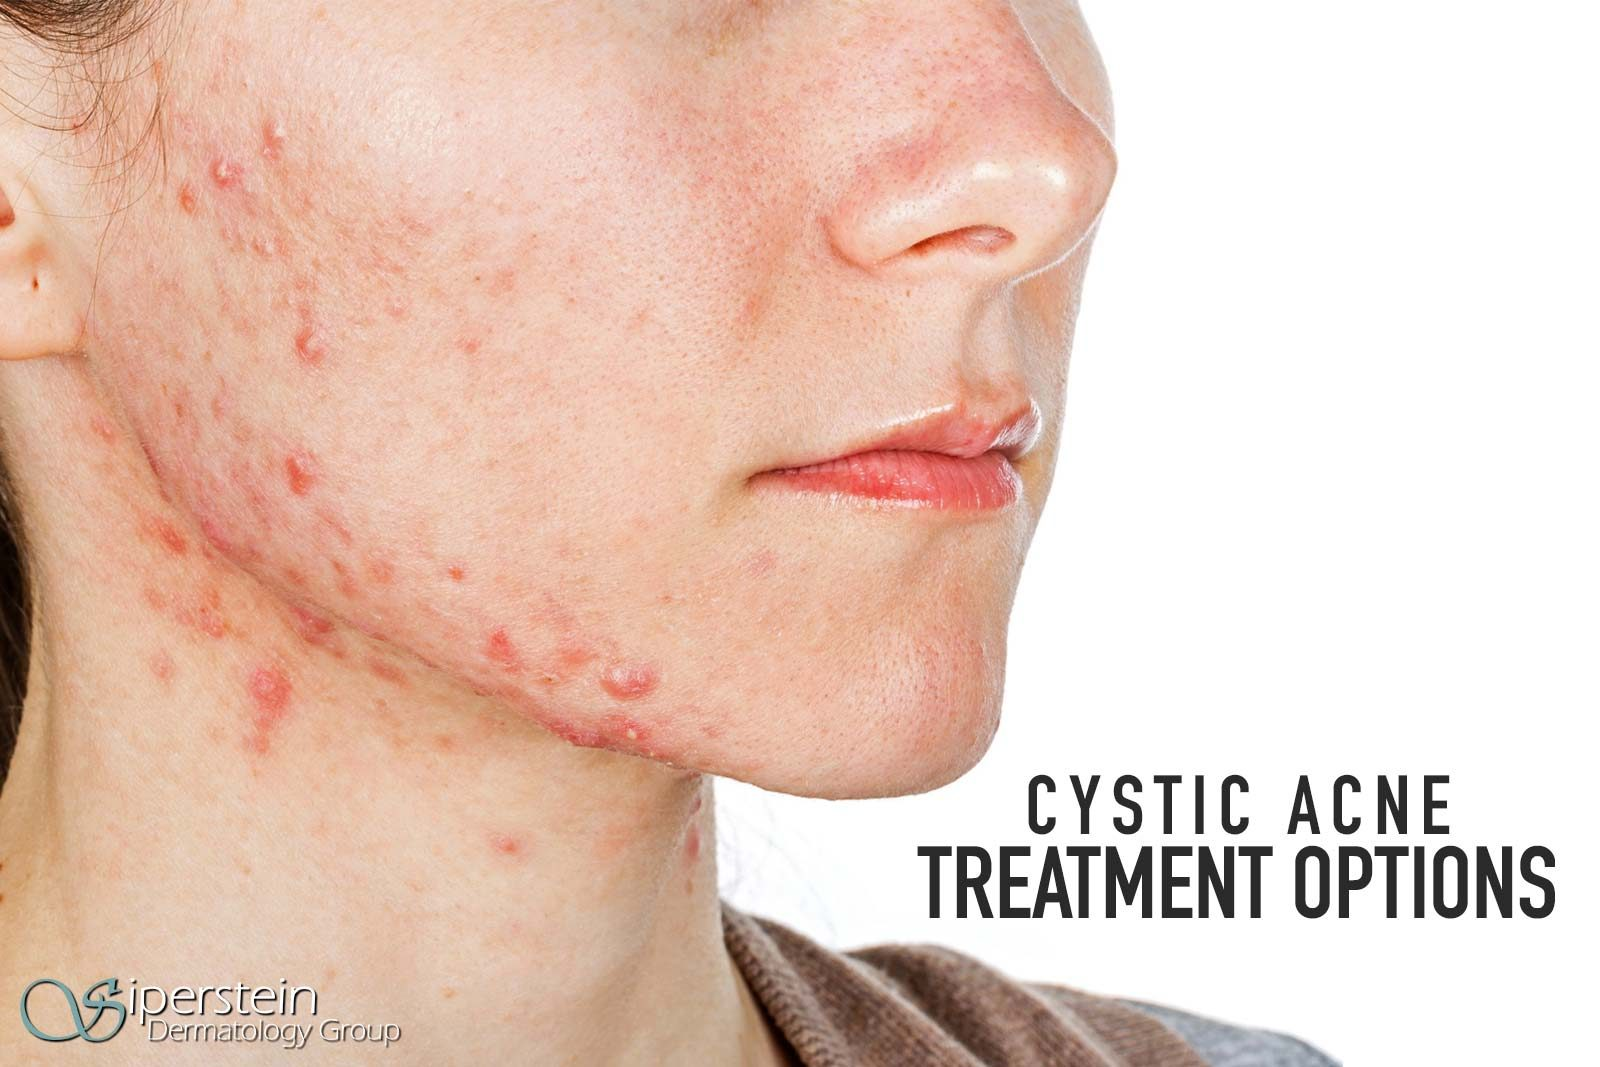 Everything You Need To Know About Cystic Acne Treatment